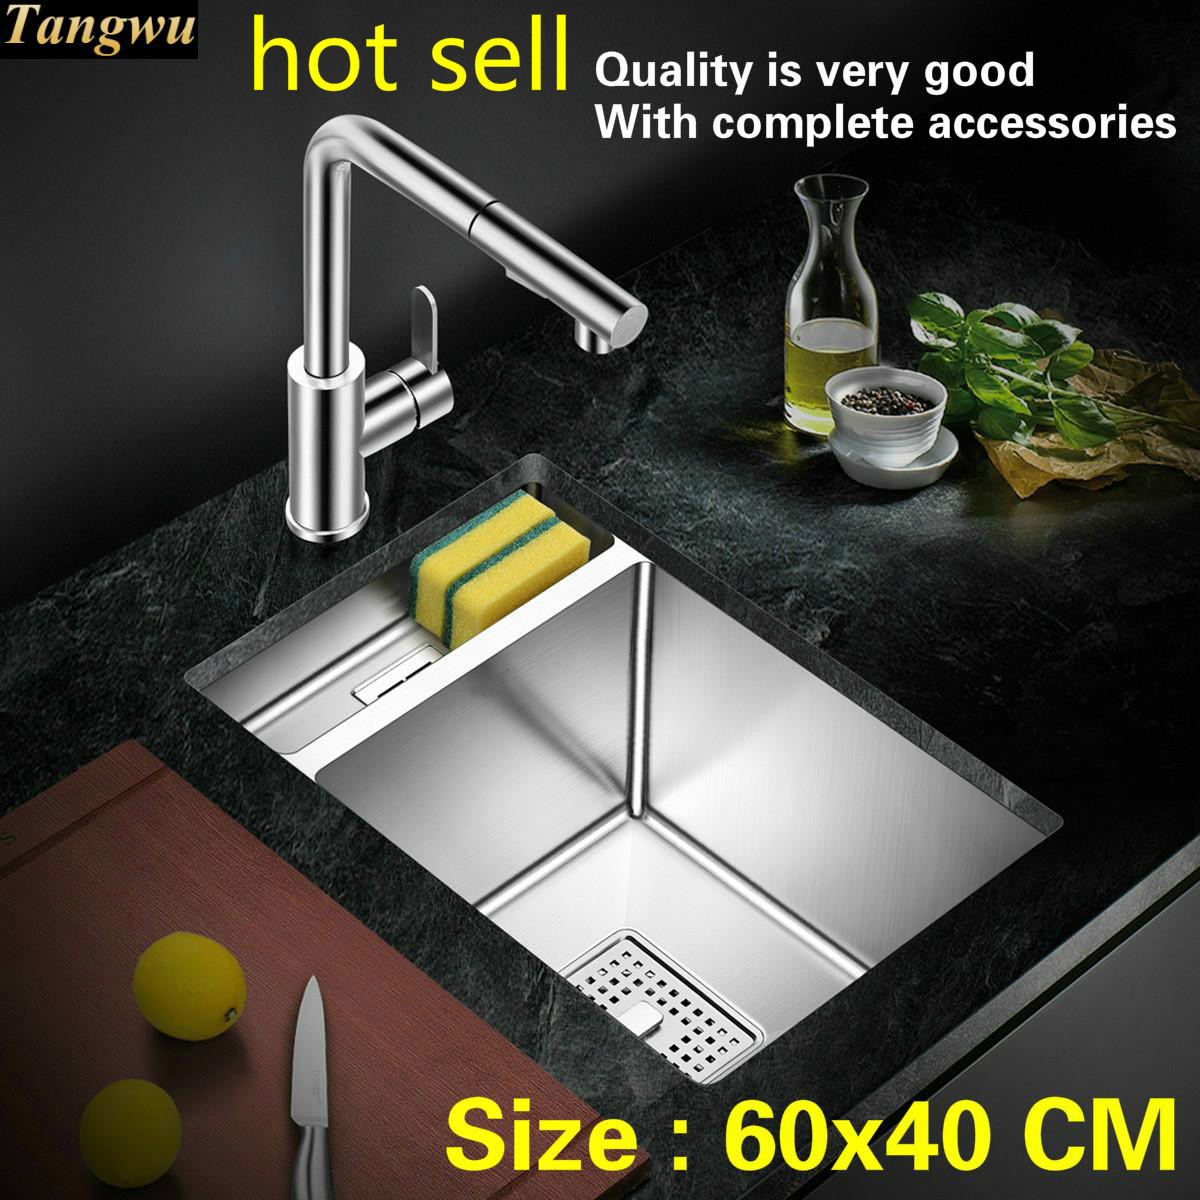 Free shipping Household individuality kitchen manual sink single trough 304 food-grade stainless steel hot sell 60x40 CMFree shipping Household individuality kitchen manual sink single trough 304 food-grade stainless steel hot sell 60x40 CM